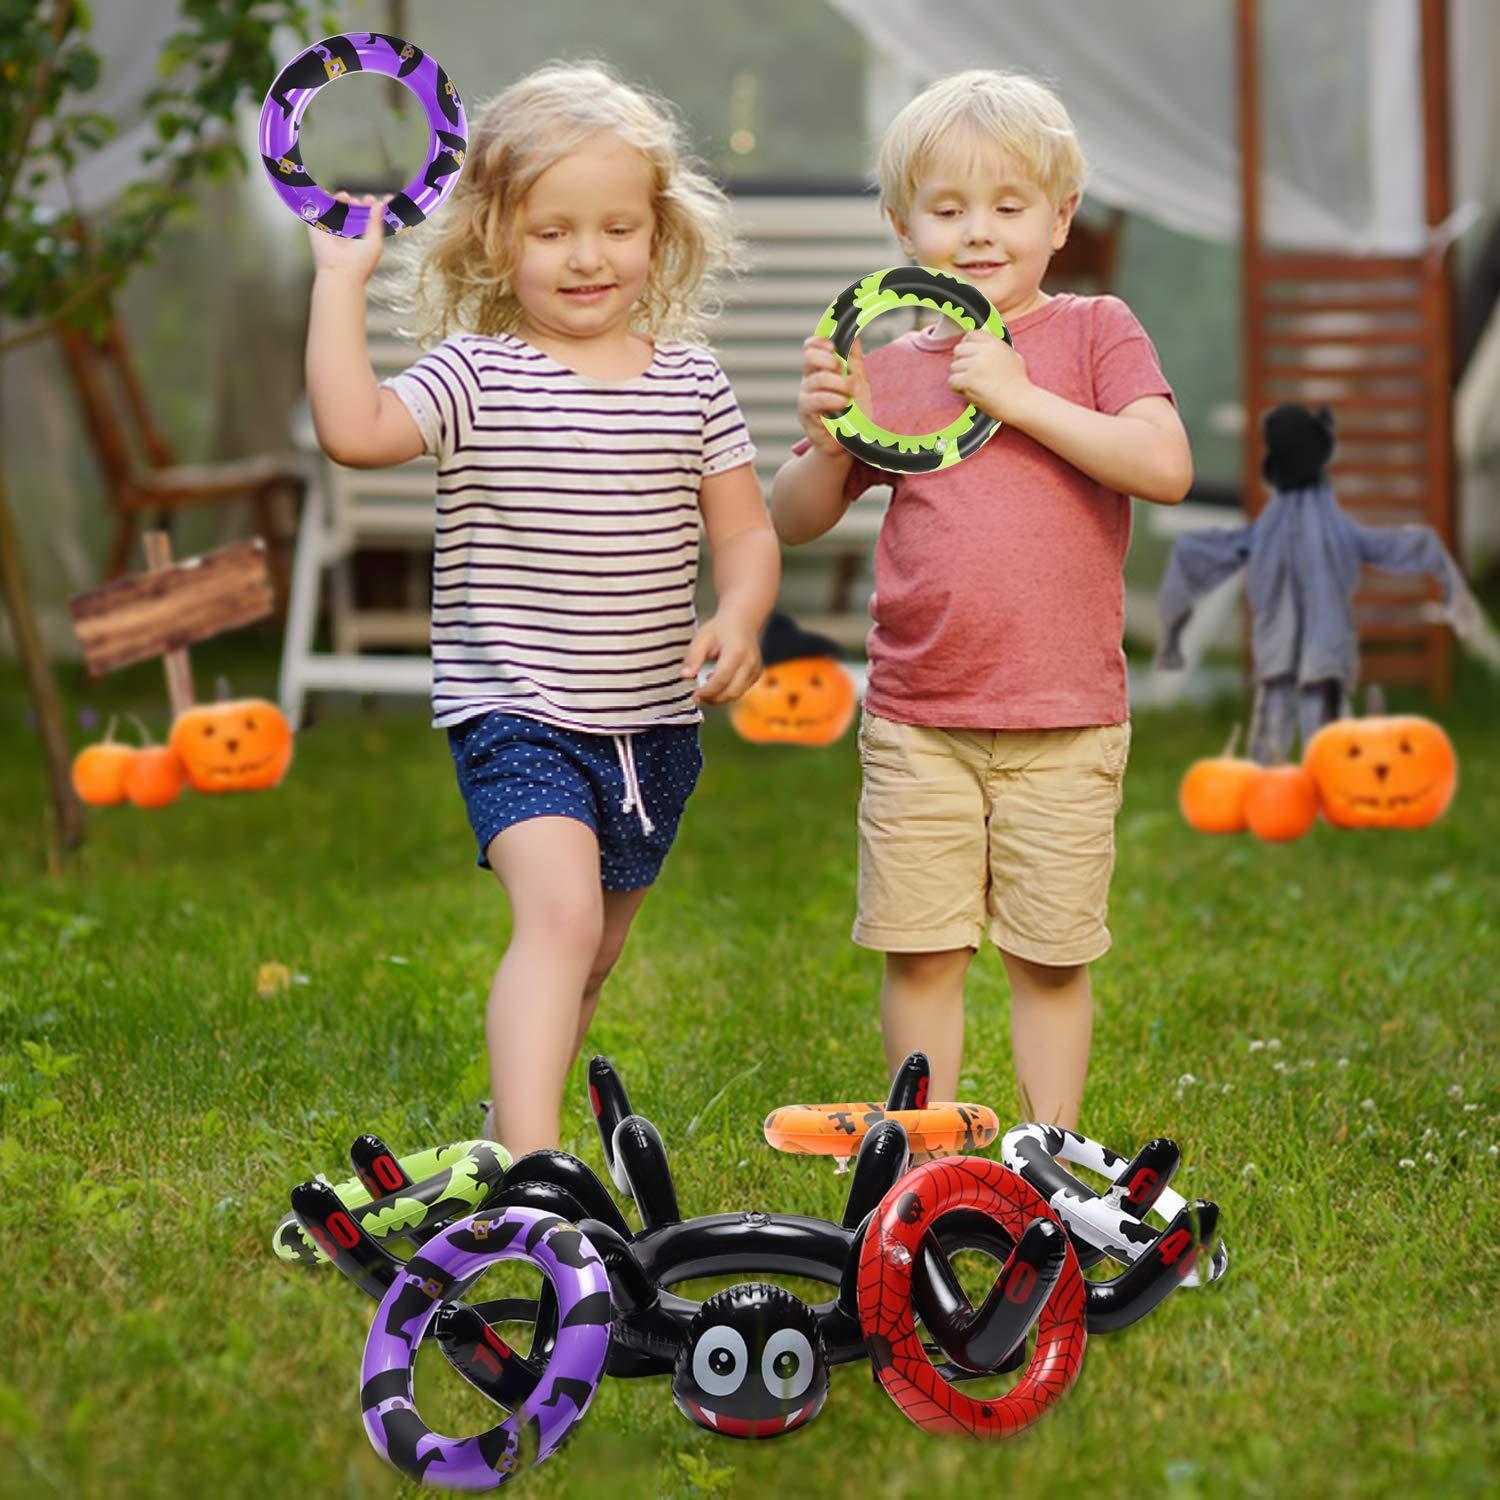 GROBRO7 Halloween Ring Toss Game for Party Inflatable Floating Swimming Ring Toss for Pool Party Favor Halloween Party Supplies Decoration for Kids Funny Family Games